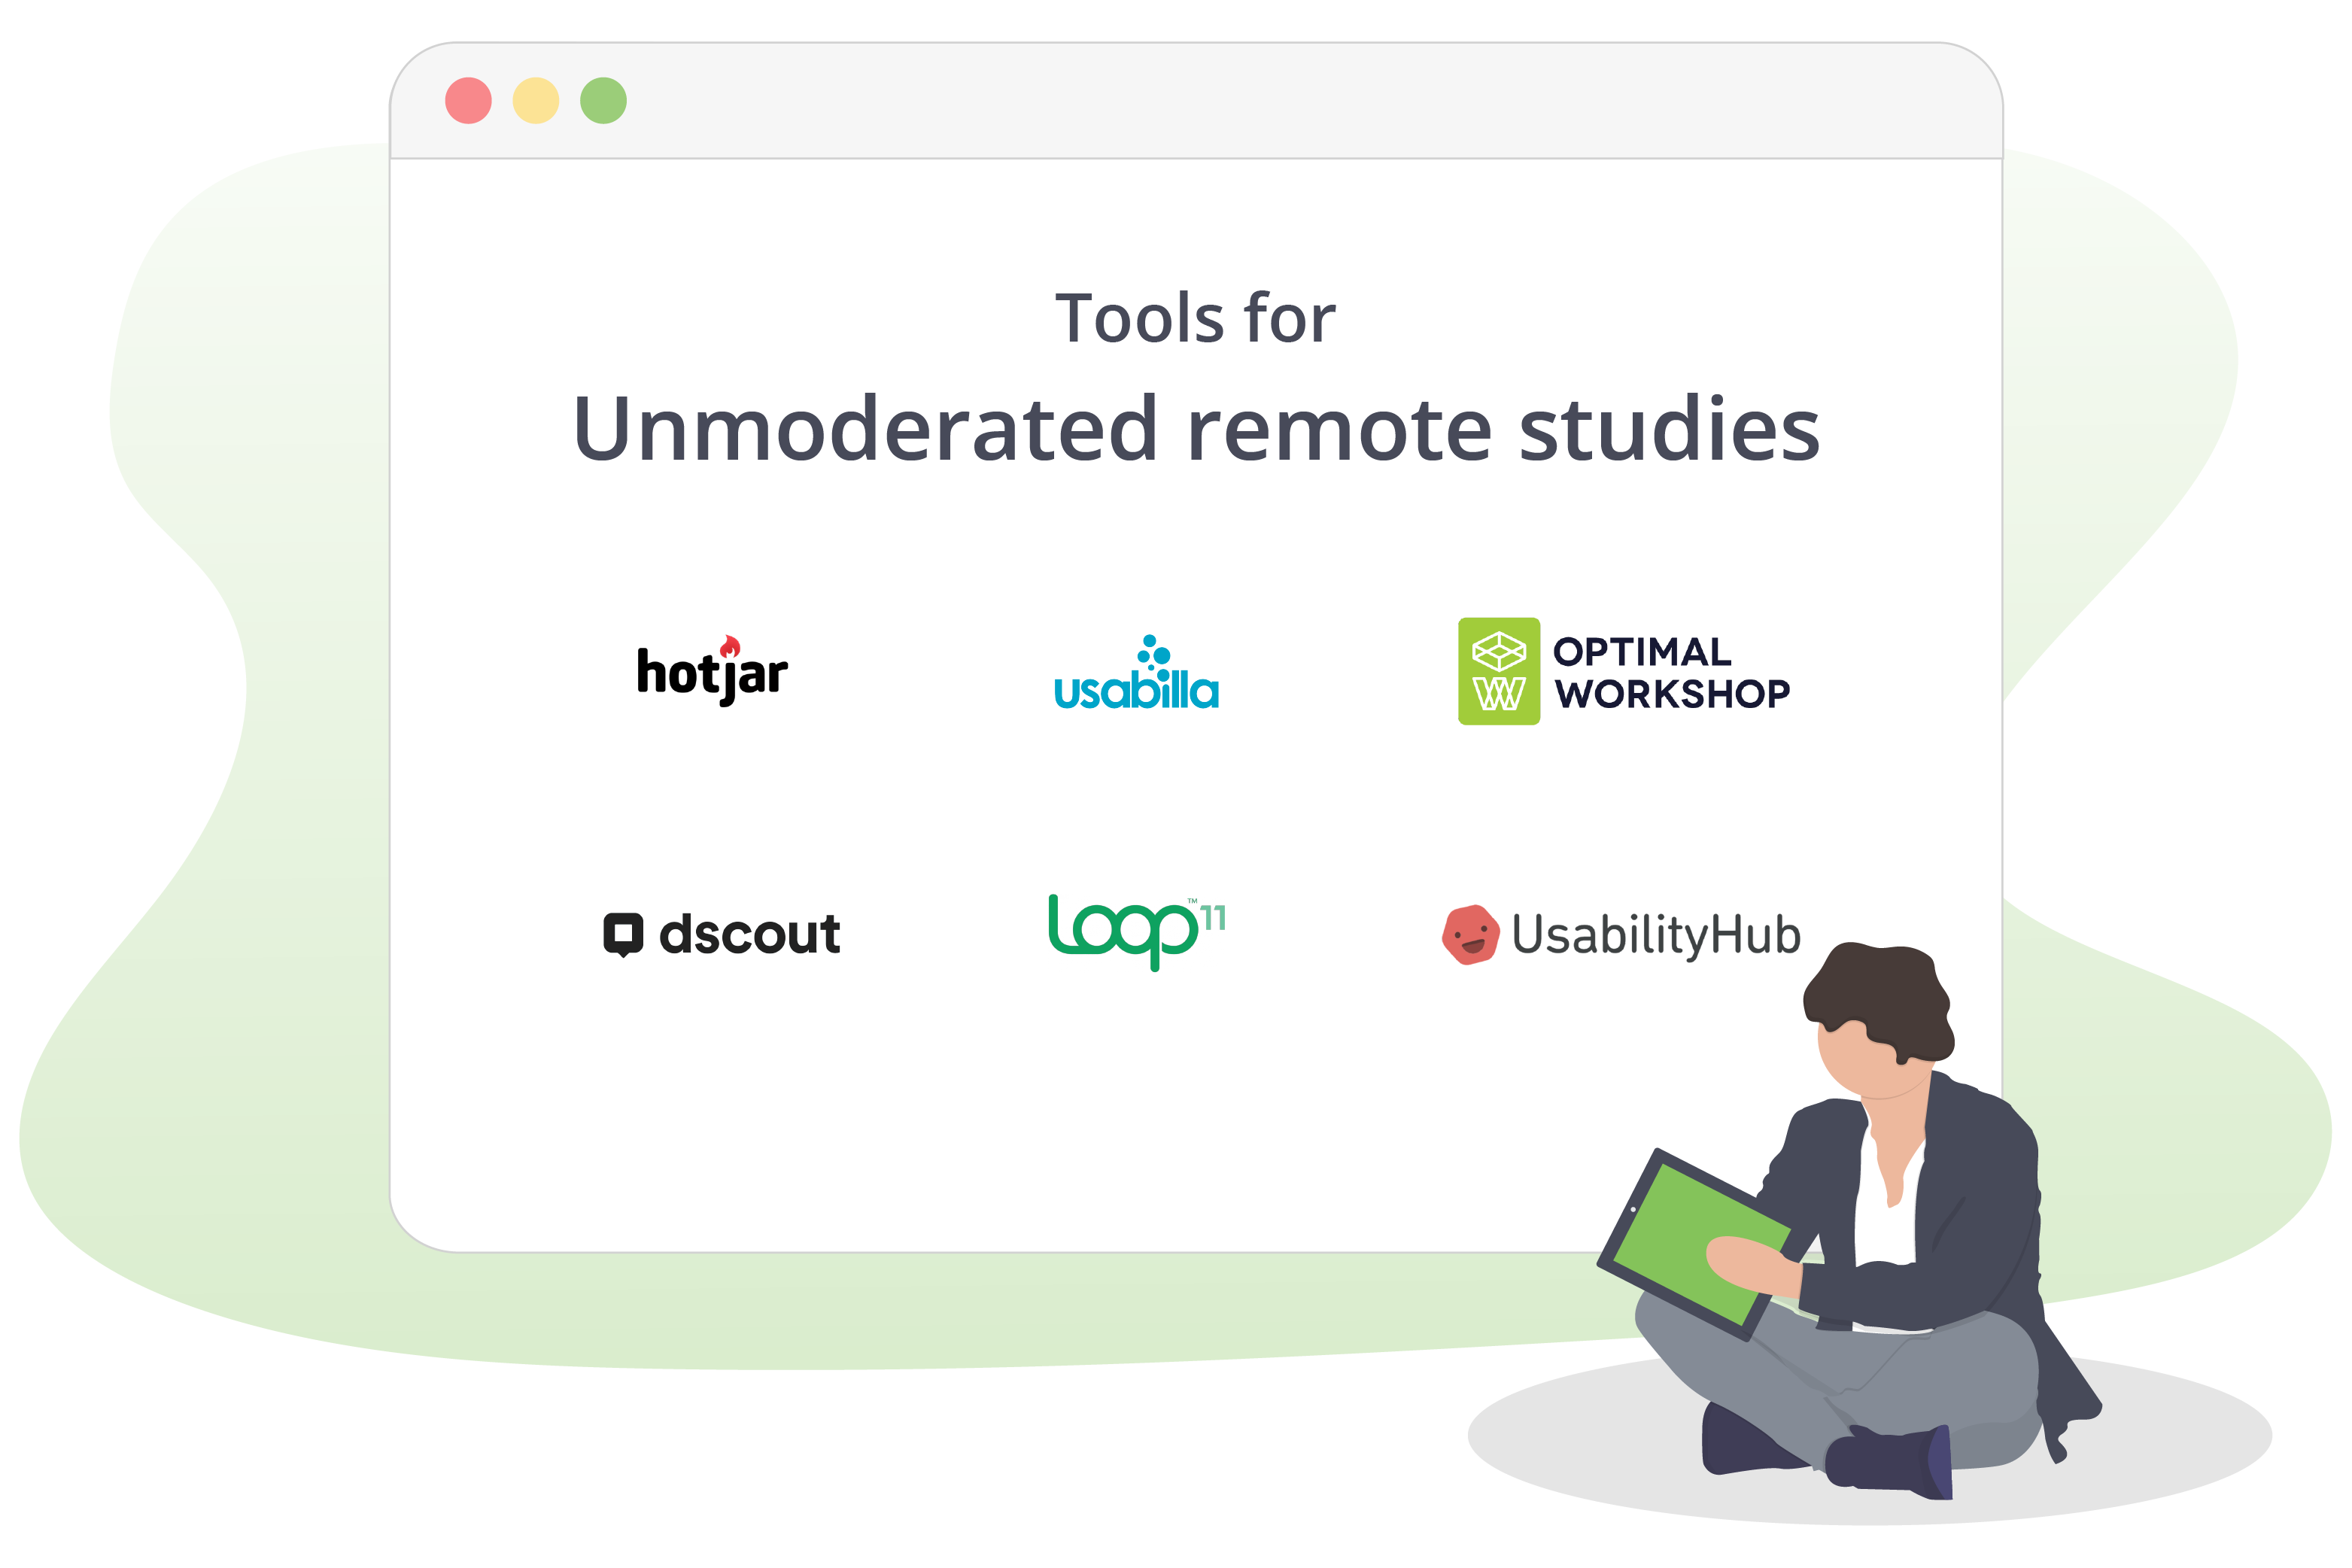 Unmoderated remote research tools